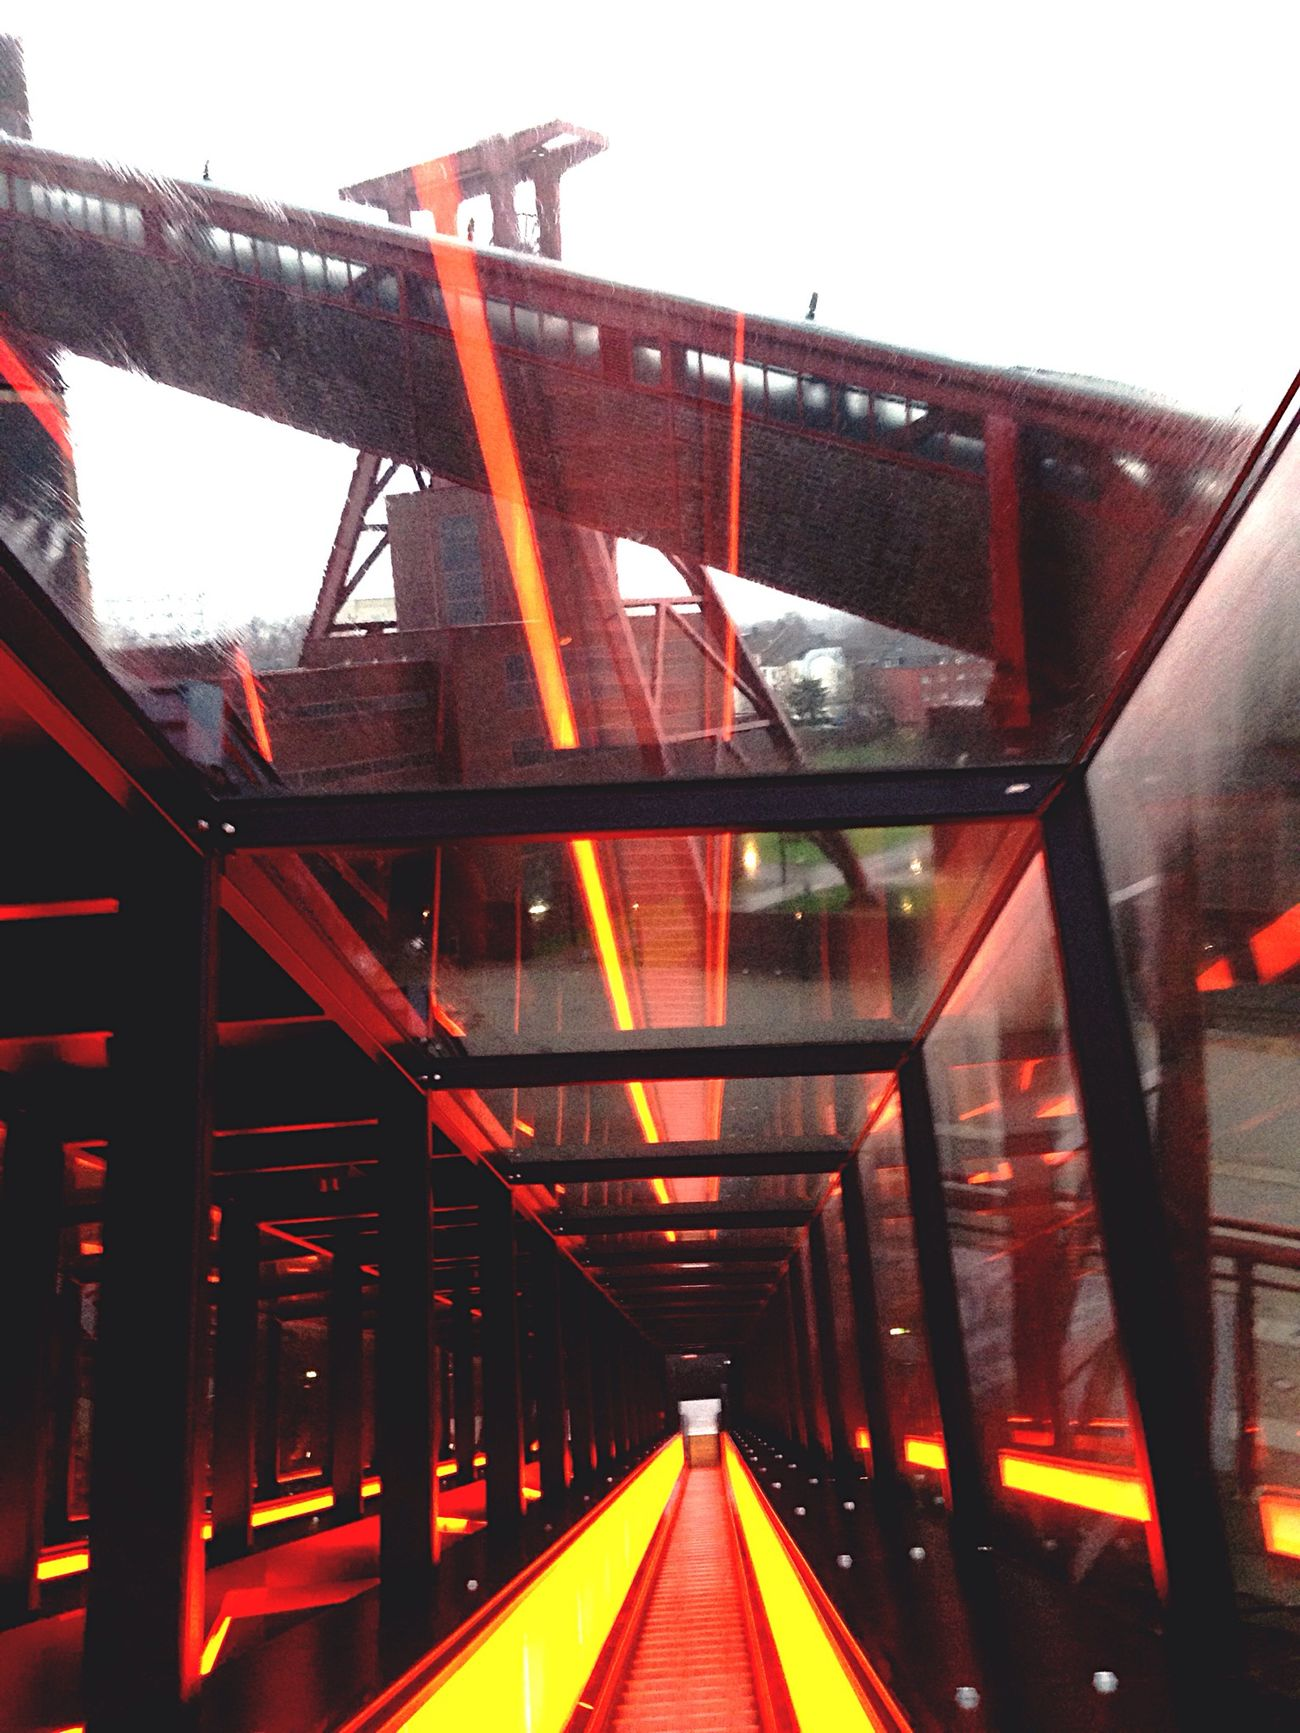 Exhibition Stairway Rolltreppe Zeche Zollverein Light Effects Orange Industrial Vanishing Point